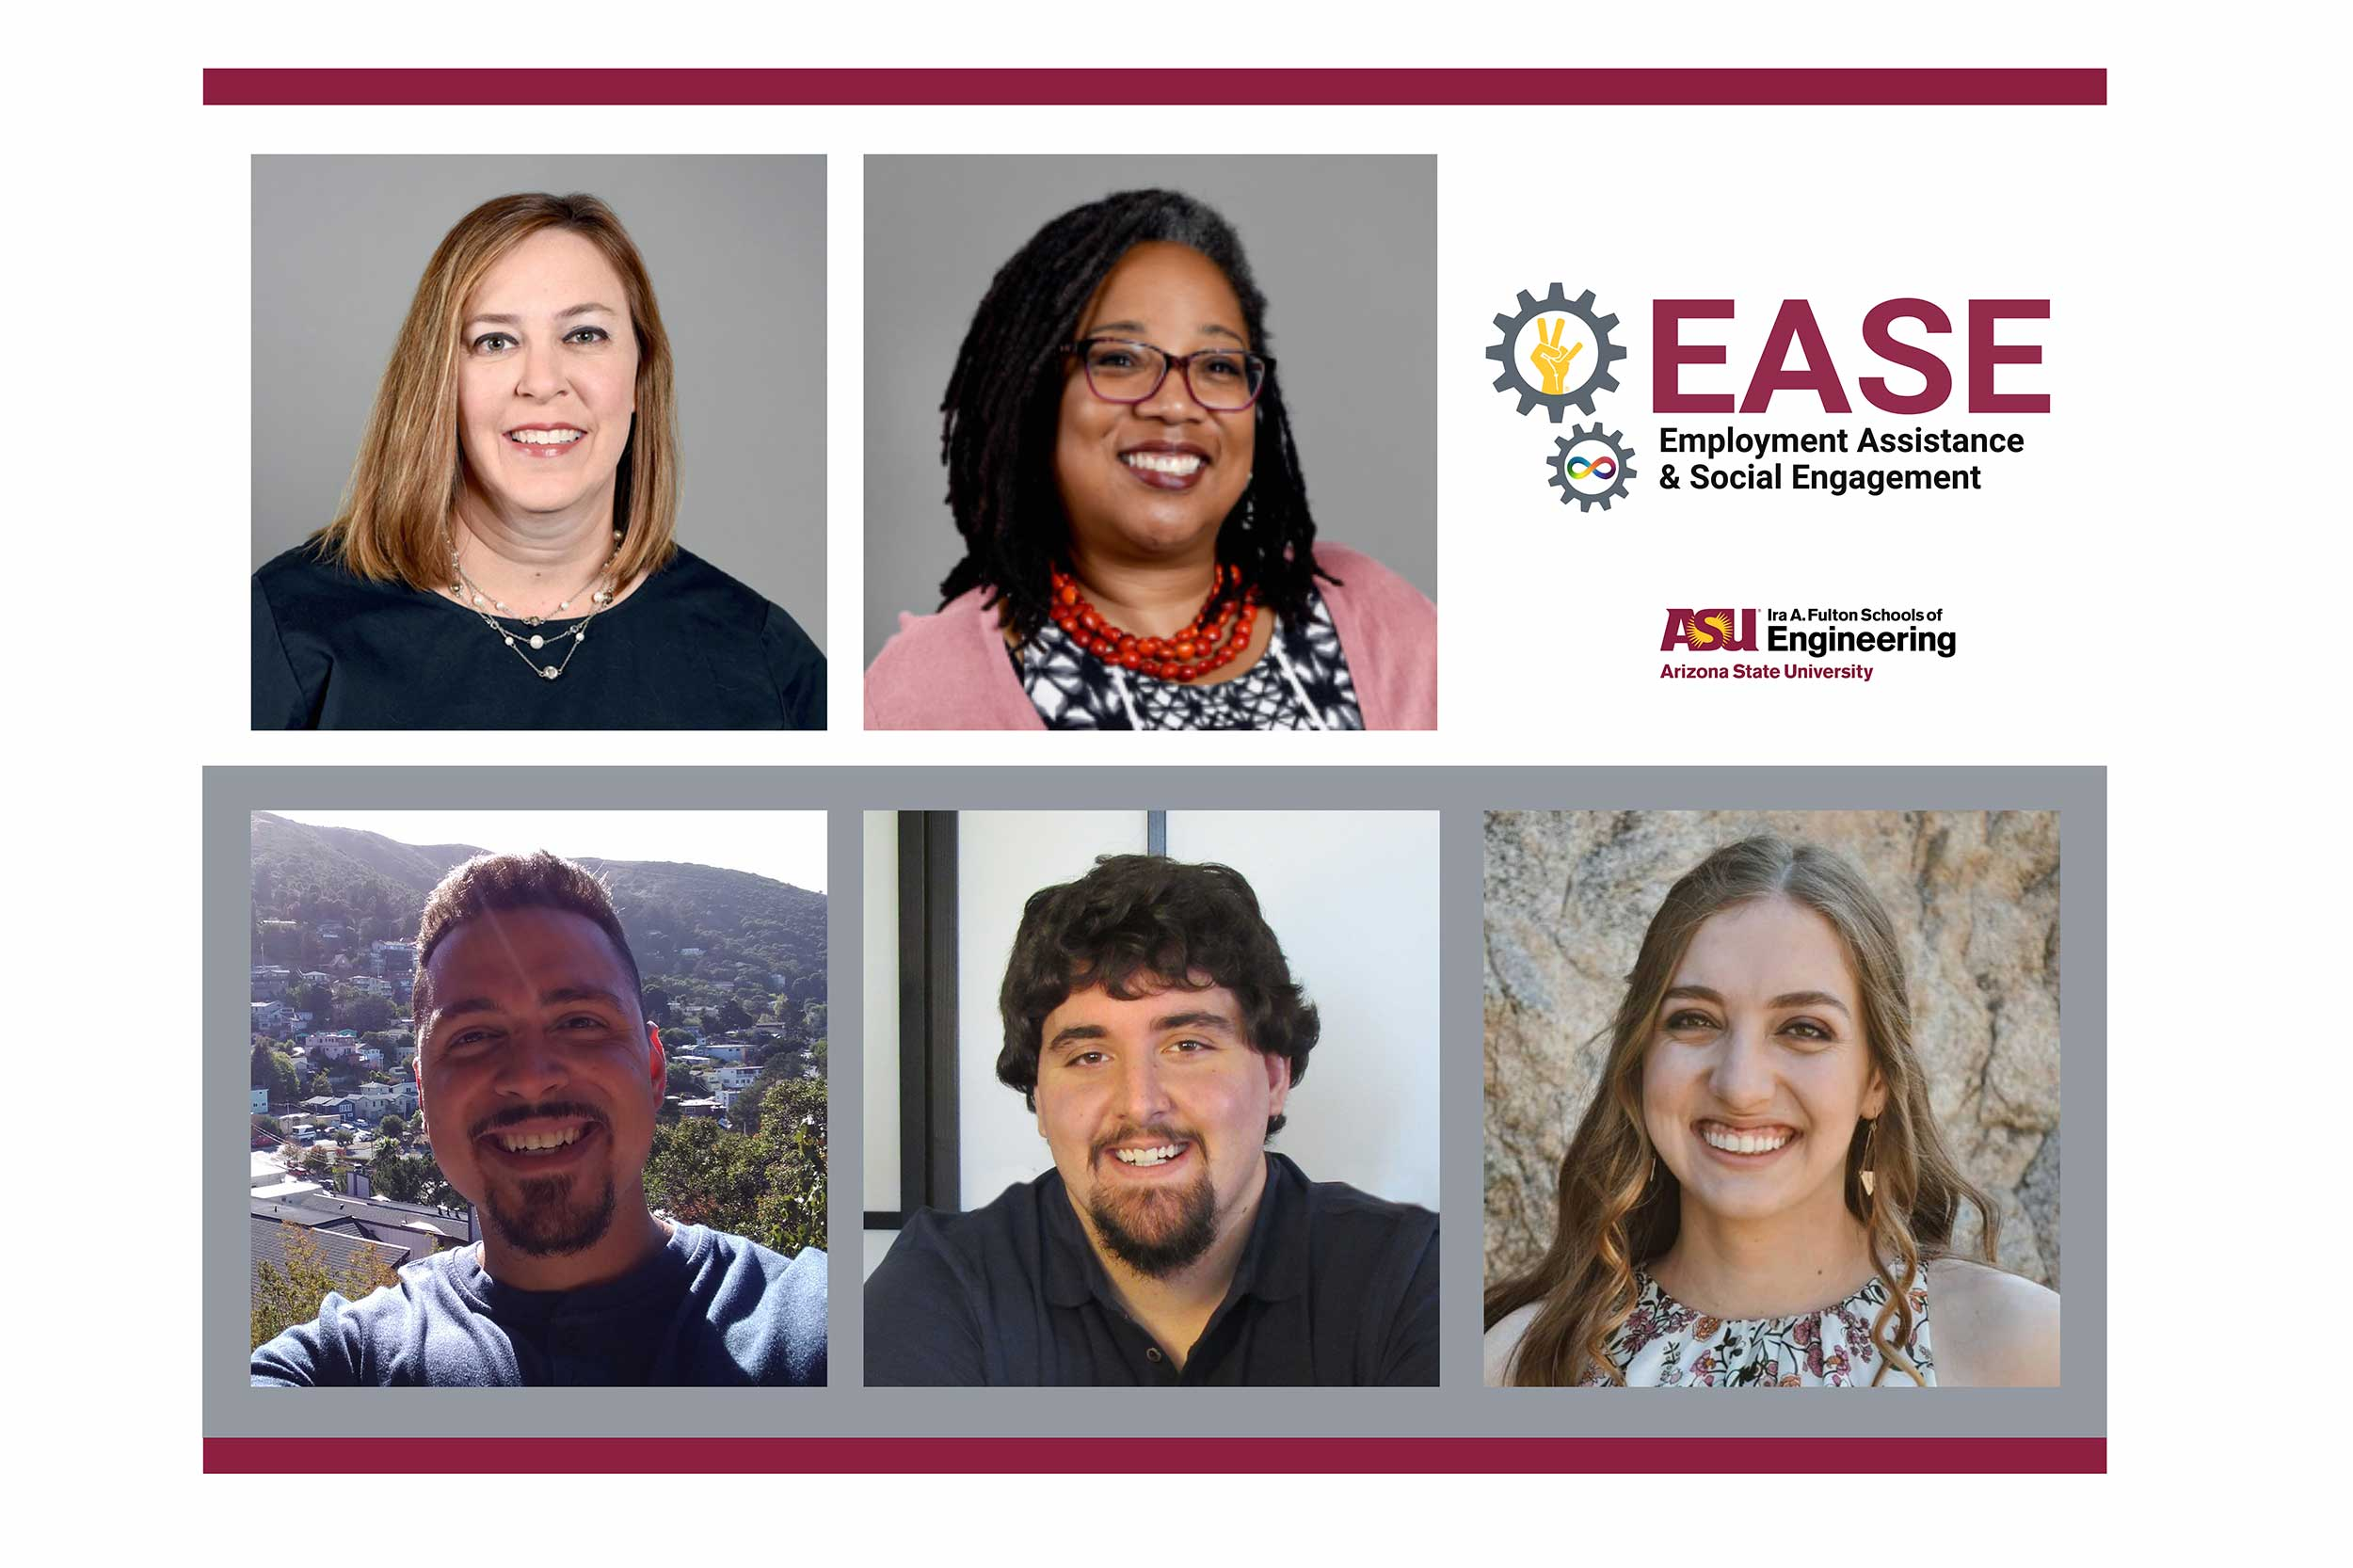 Deana Delp, Maria Dixon and three other support people for the EASE program at ASU